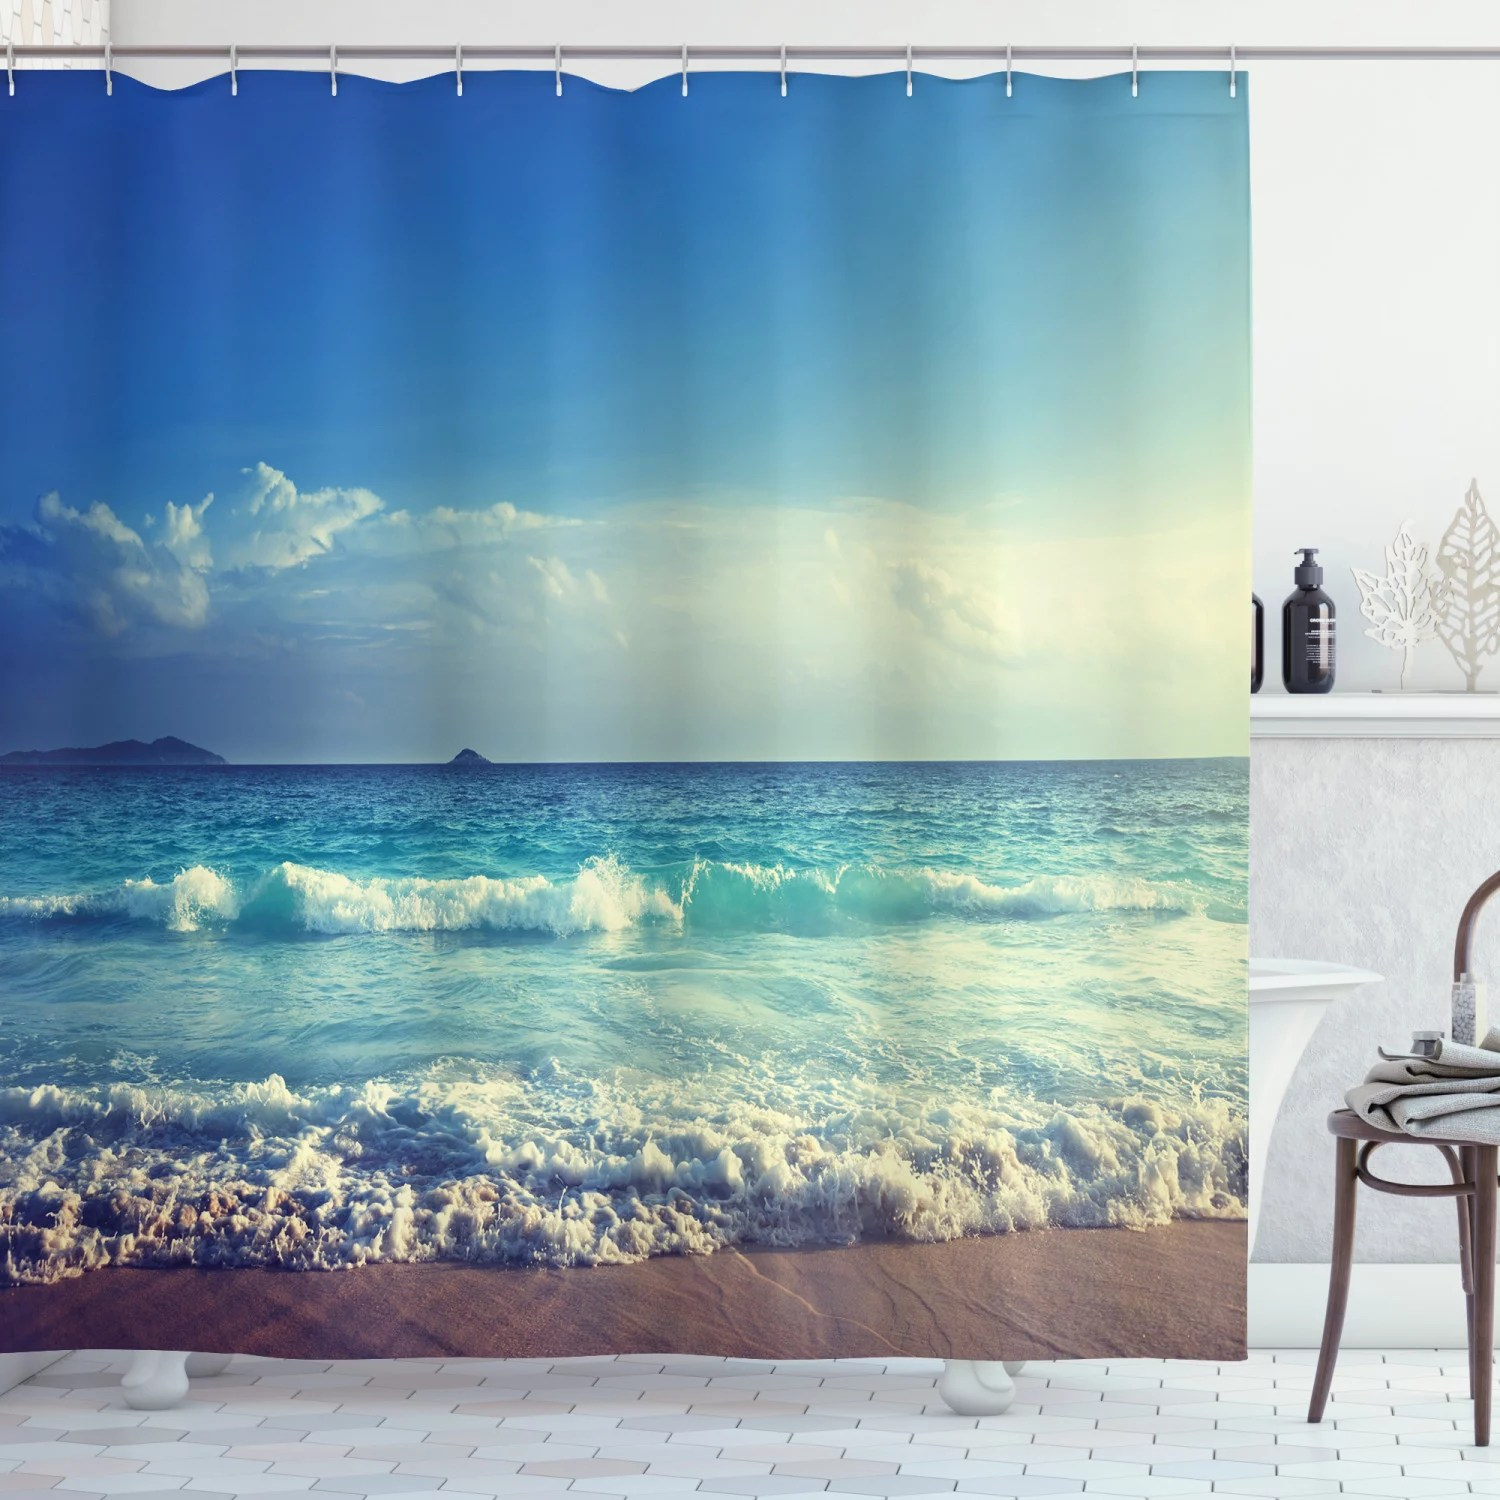 ocean shower curtain tropical island paradise beach at sunset time with waves and the misty sea image fabric bathroom set with hooks cream